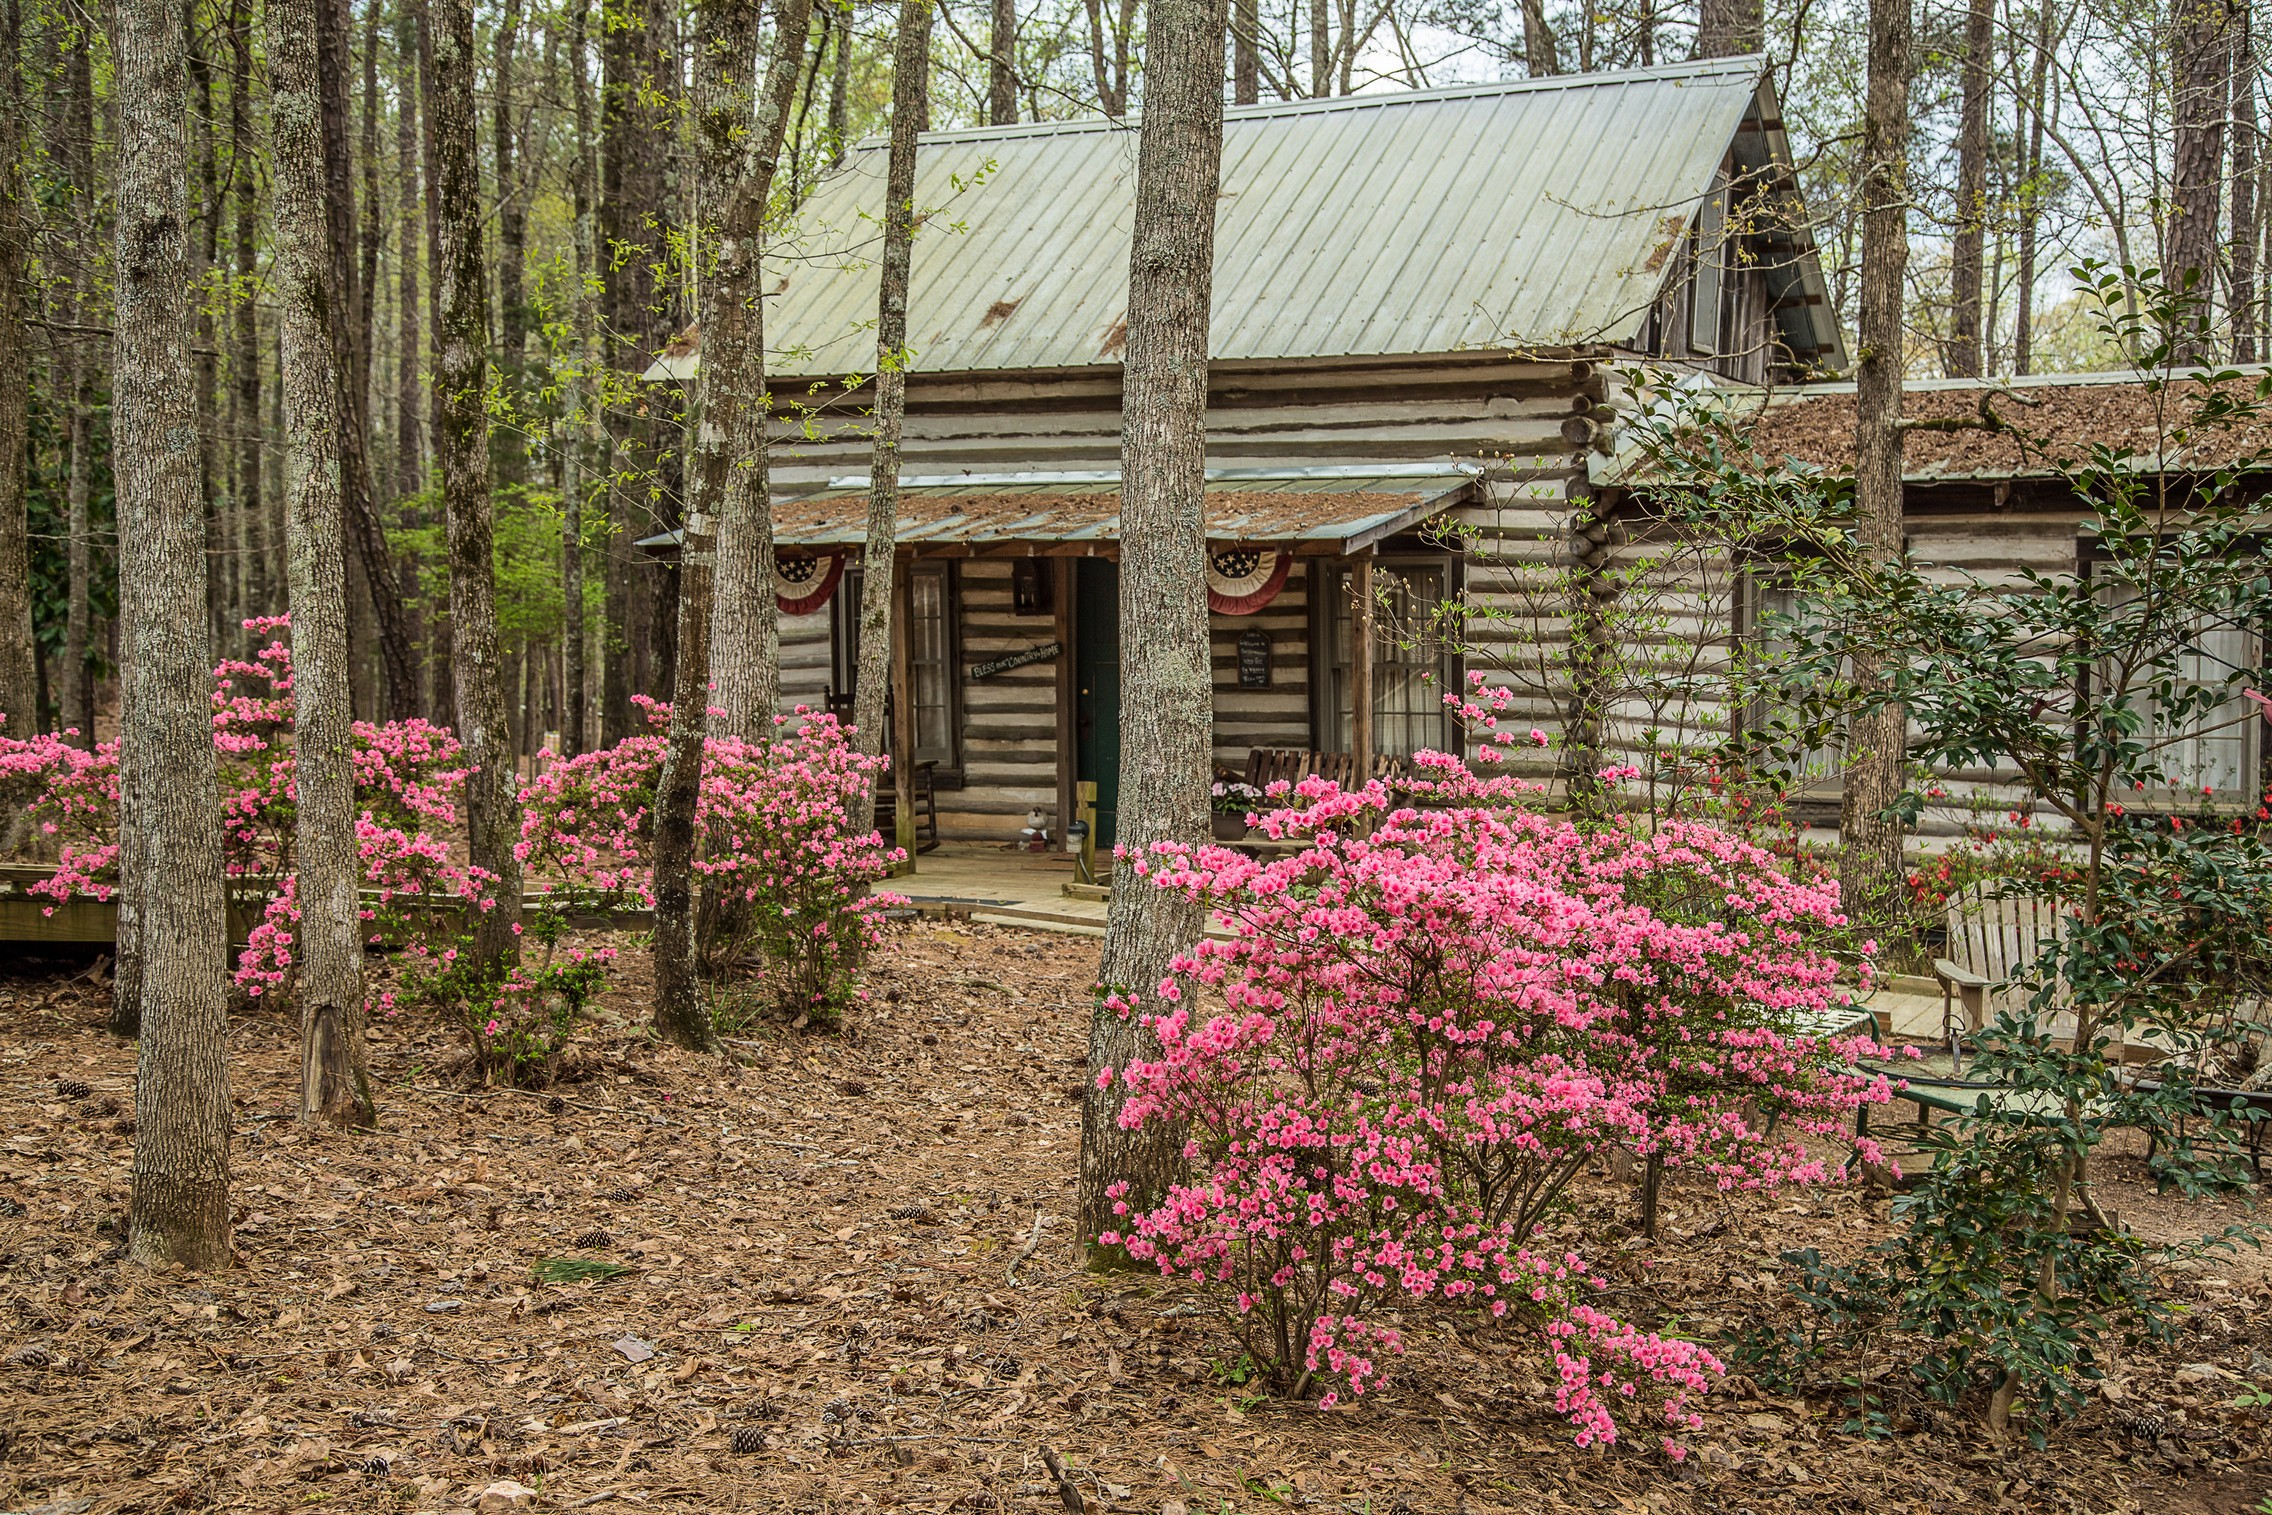 Stillmeadows Cabins in Georgia